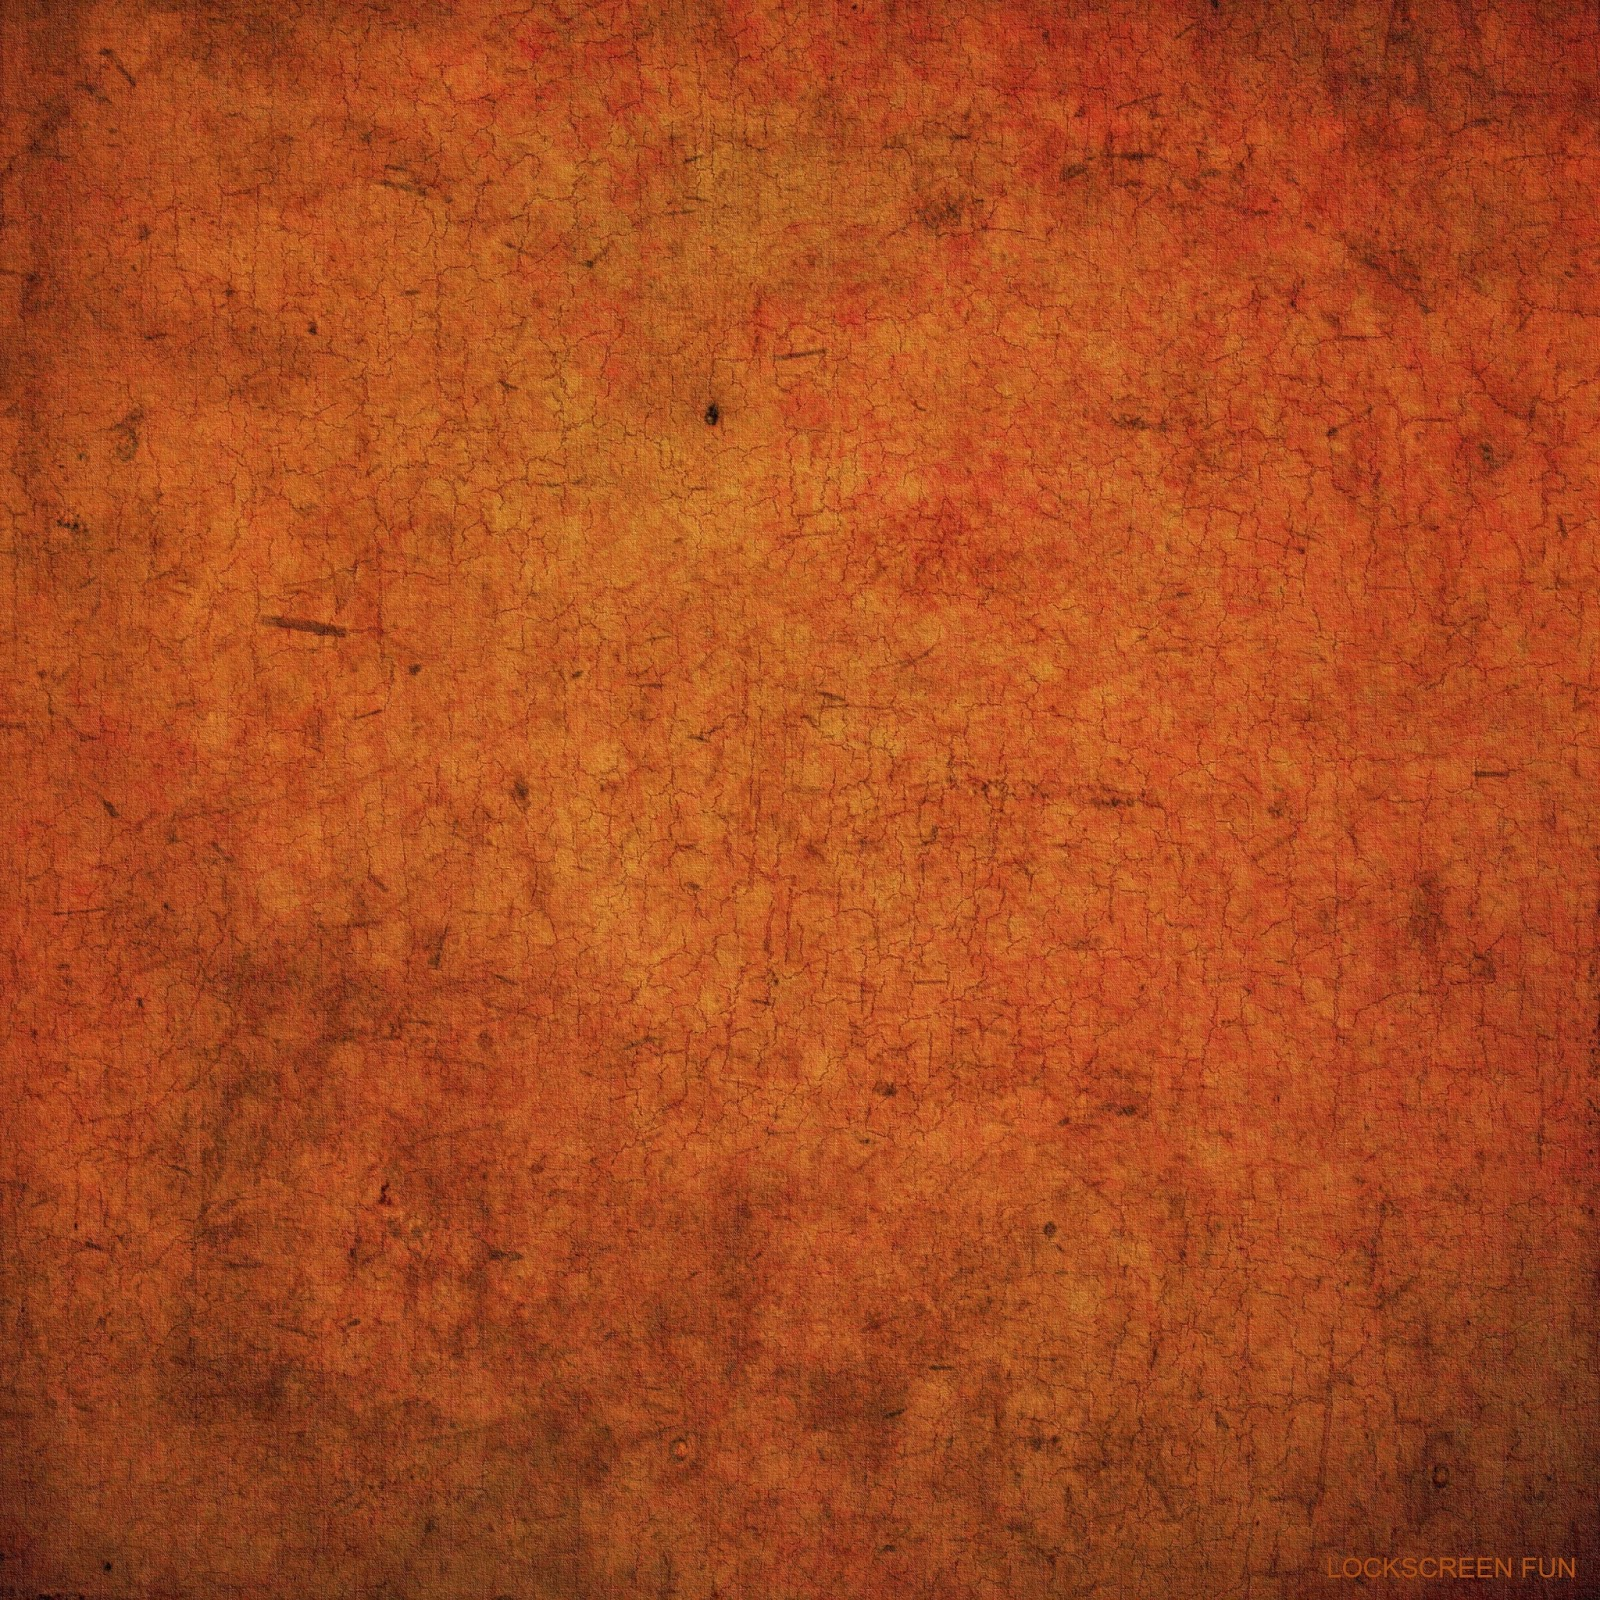 texture wallpaper is for ipad mini and ipad mini 2 1600x1600